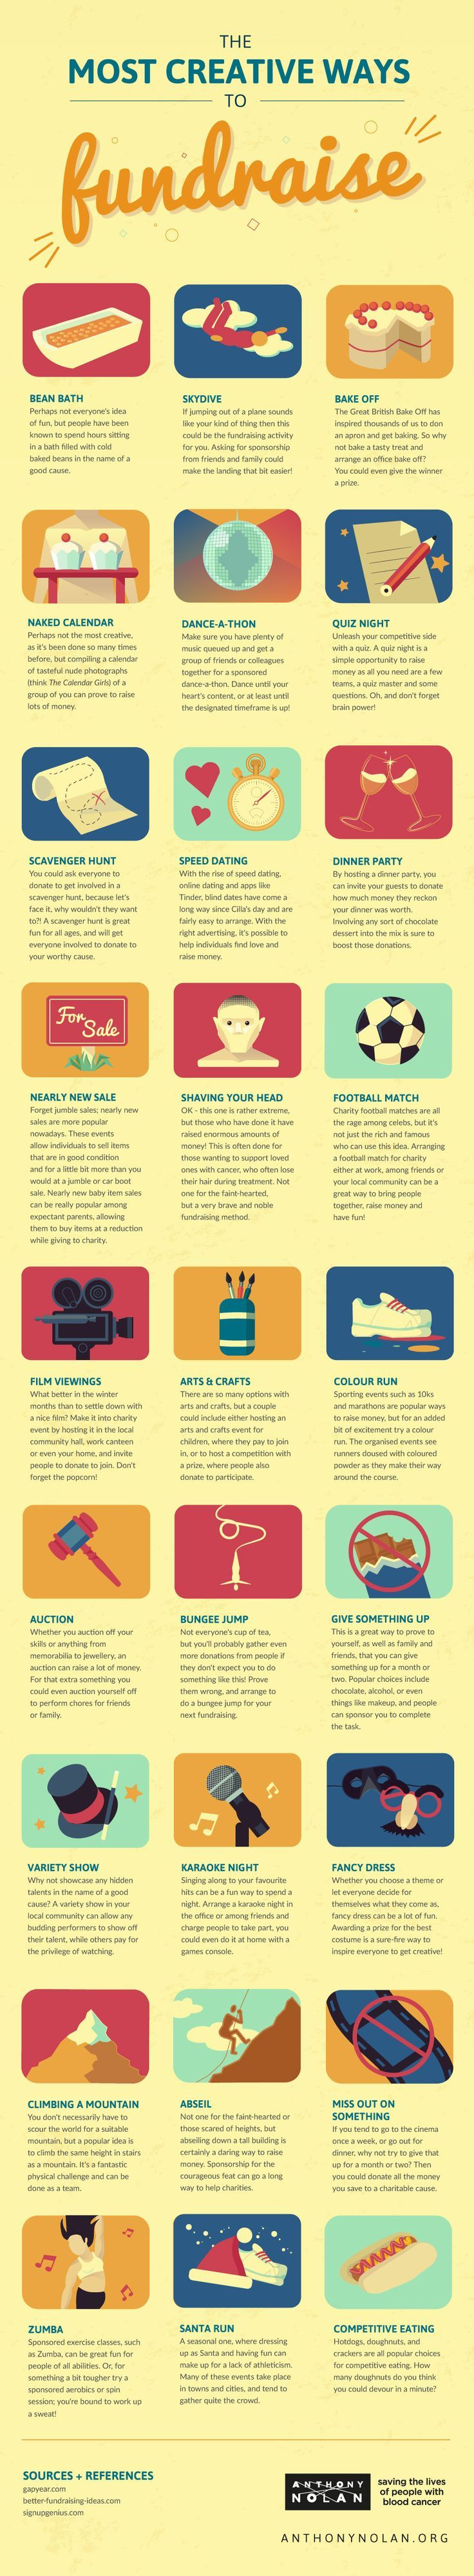 the most creative ways to fundraise #infographic | family finances